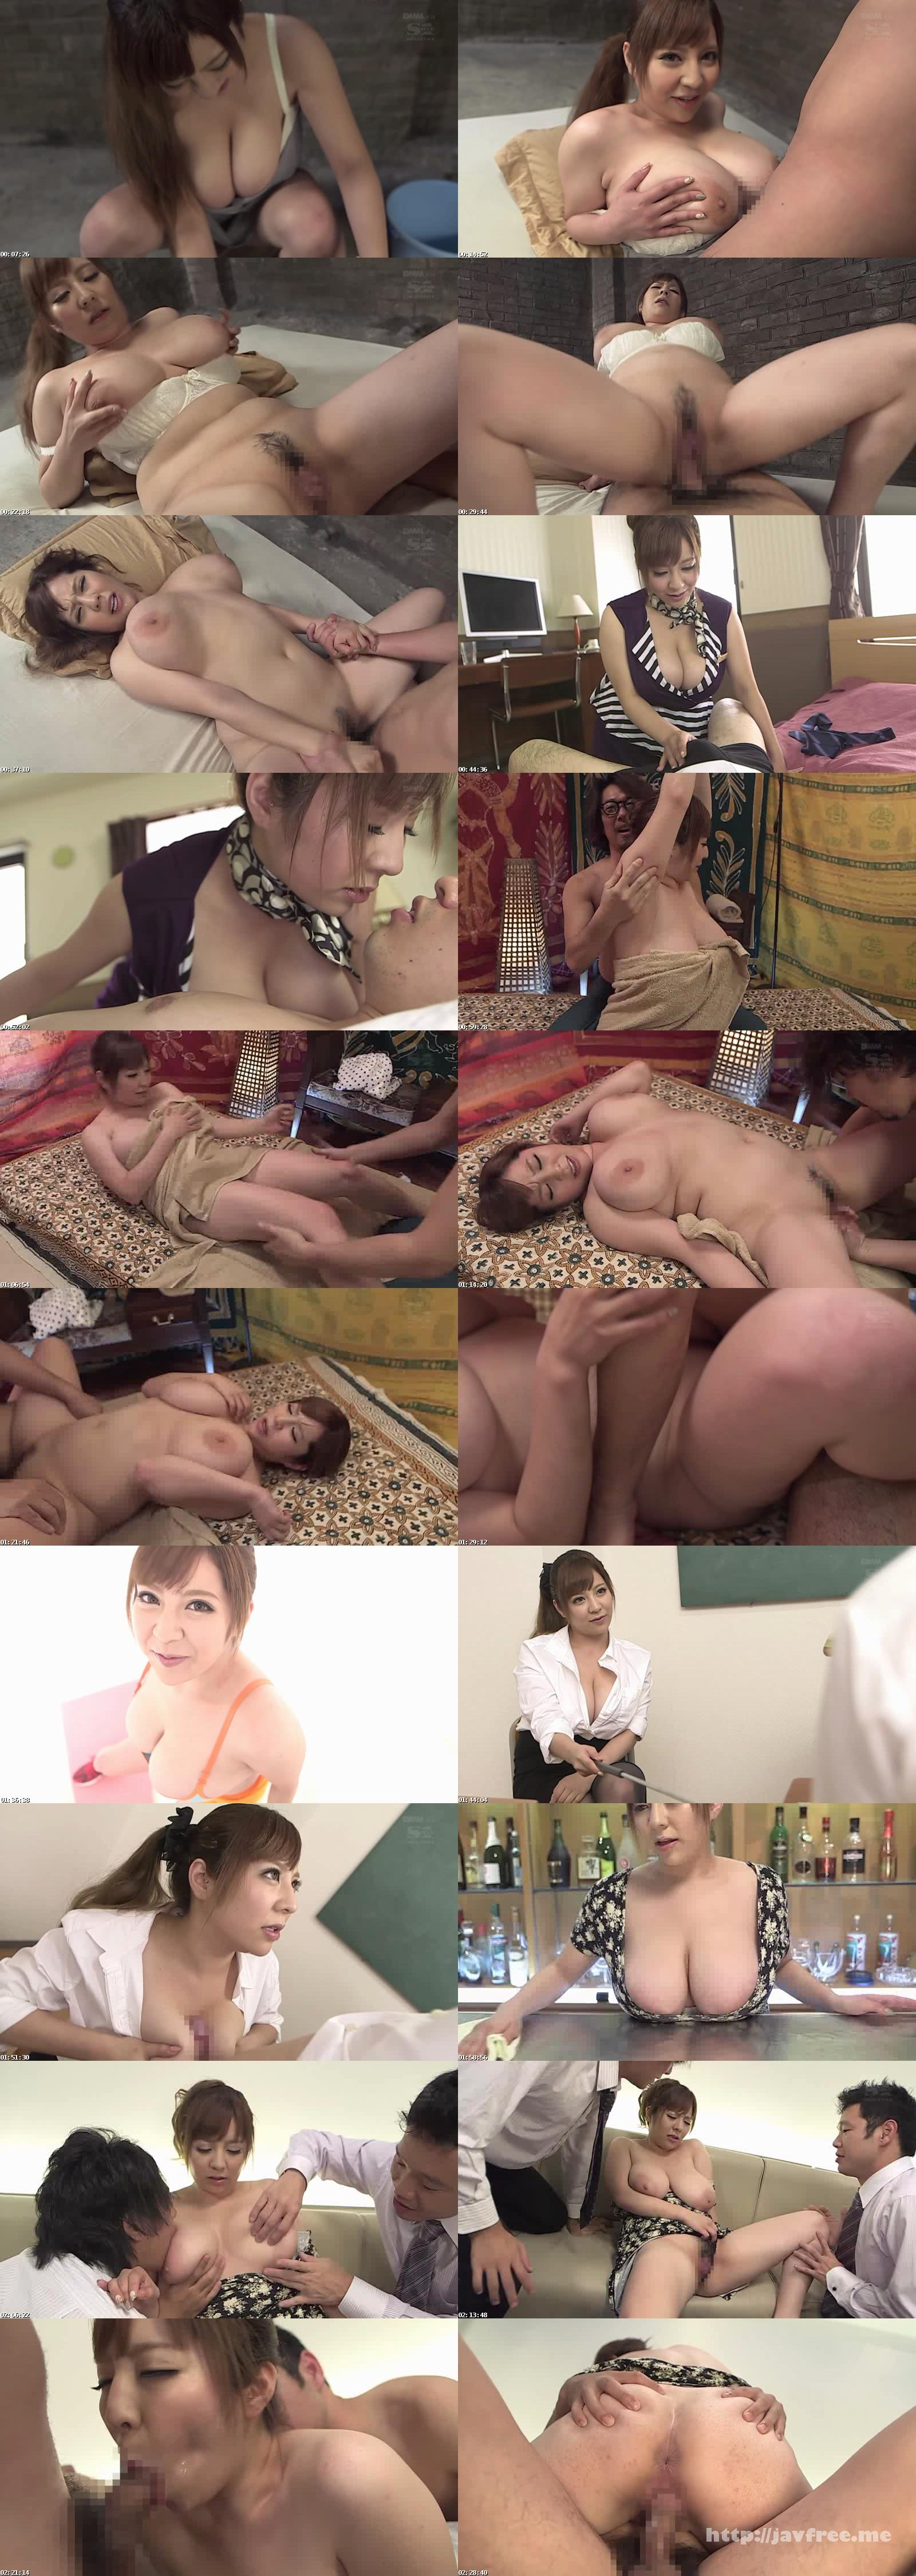 [SNIS-342] 超乳がボロリ 新山らん - image SNIS-342 on https://javfree.me